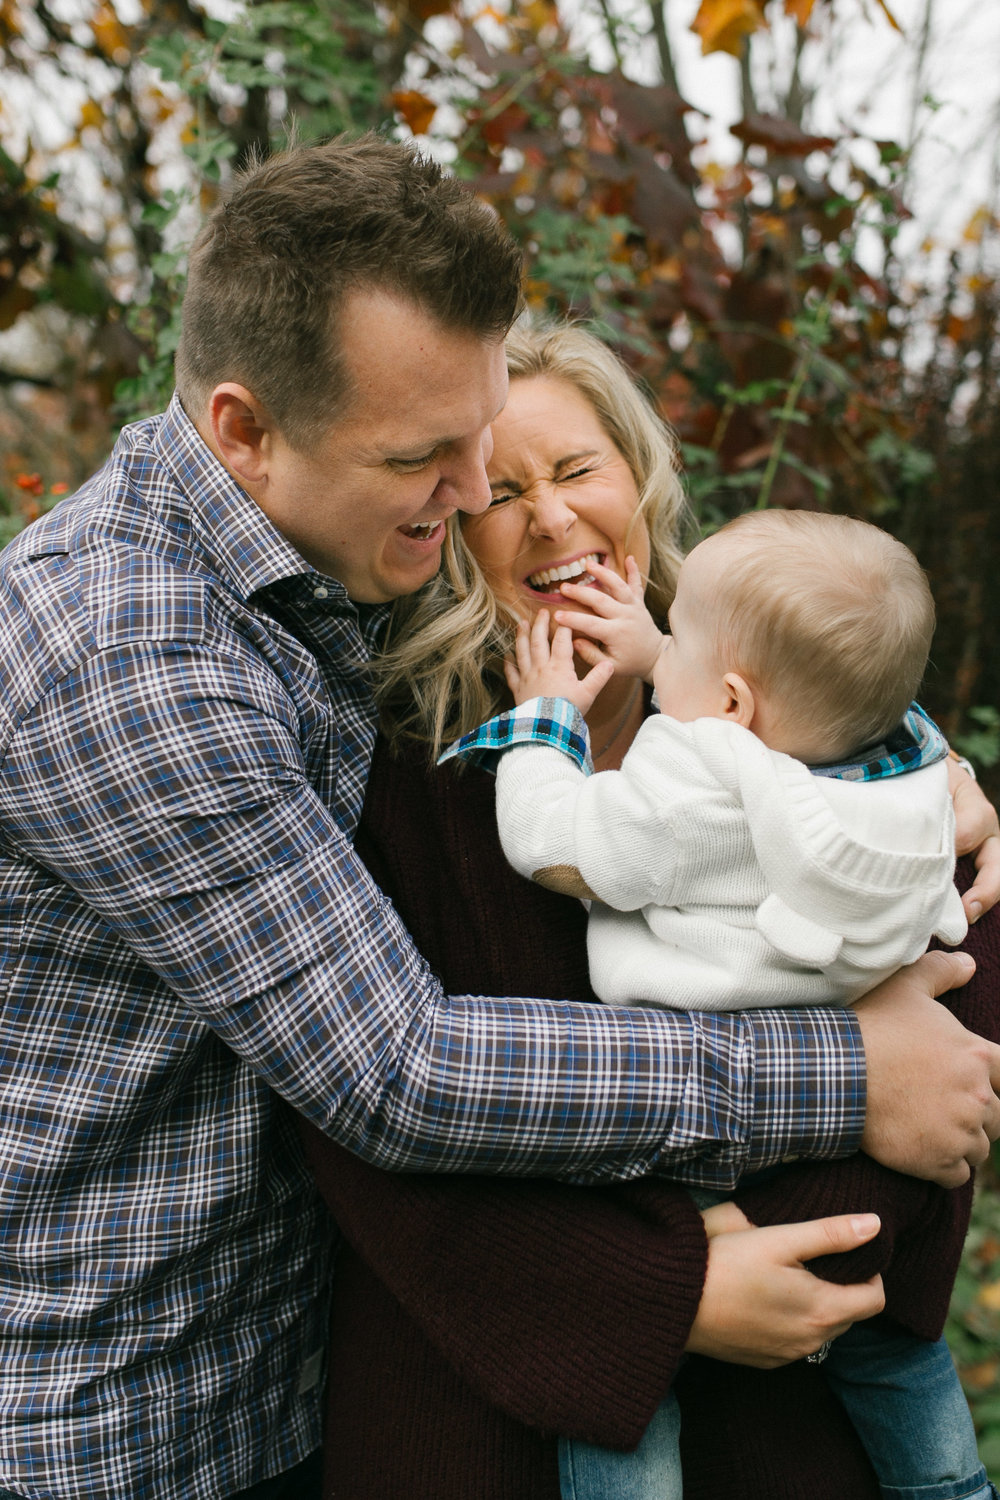 Fall Family Photography Natural Light Photo | Chelsea Macor Photography Session Outdoors Bellevue WA Lifestyle Fine Art Photography Chelsea Macor Photography-5.jpg